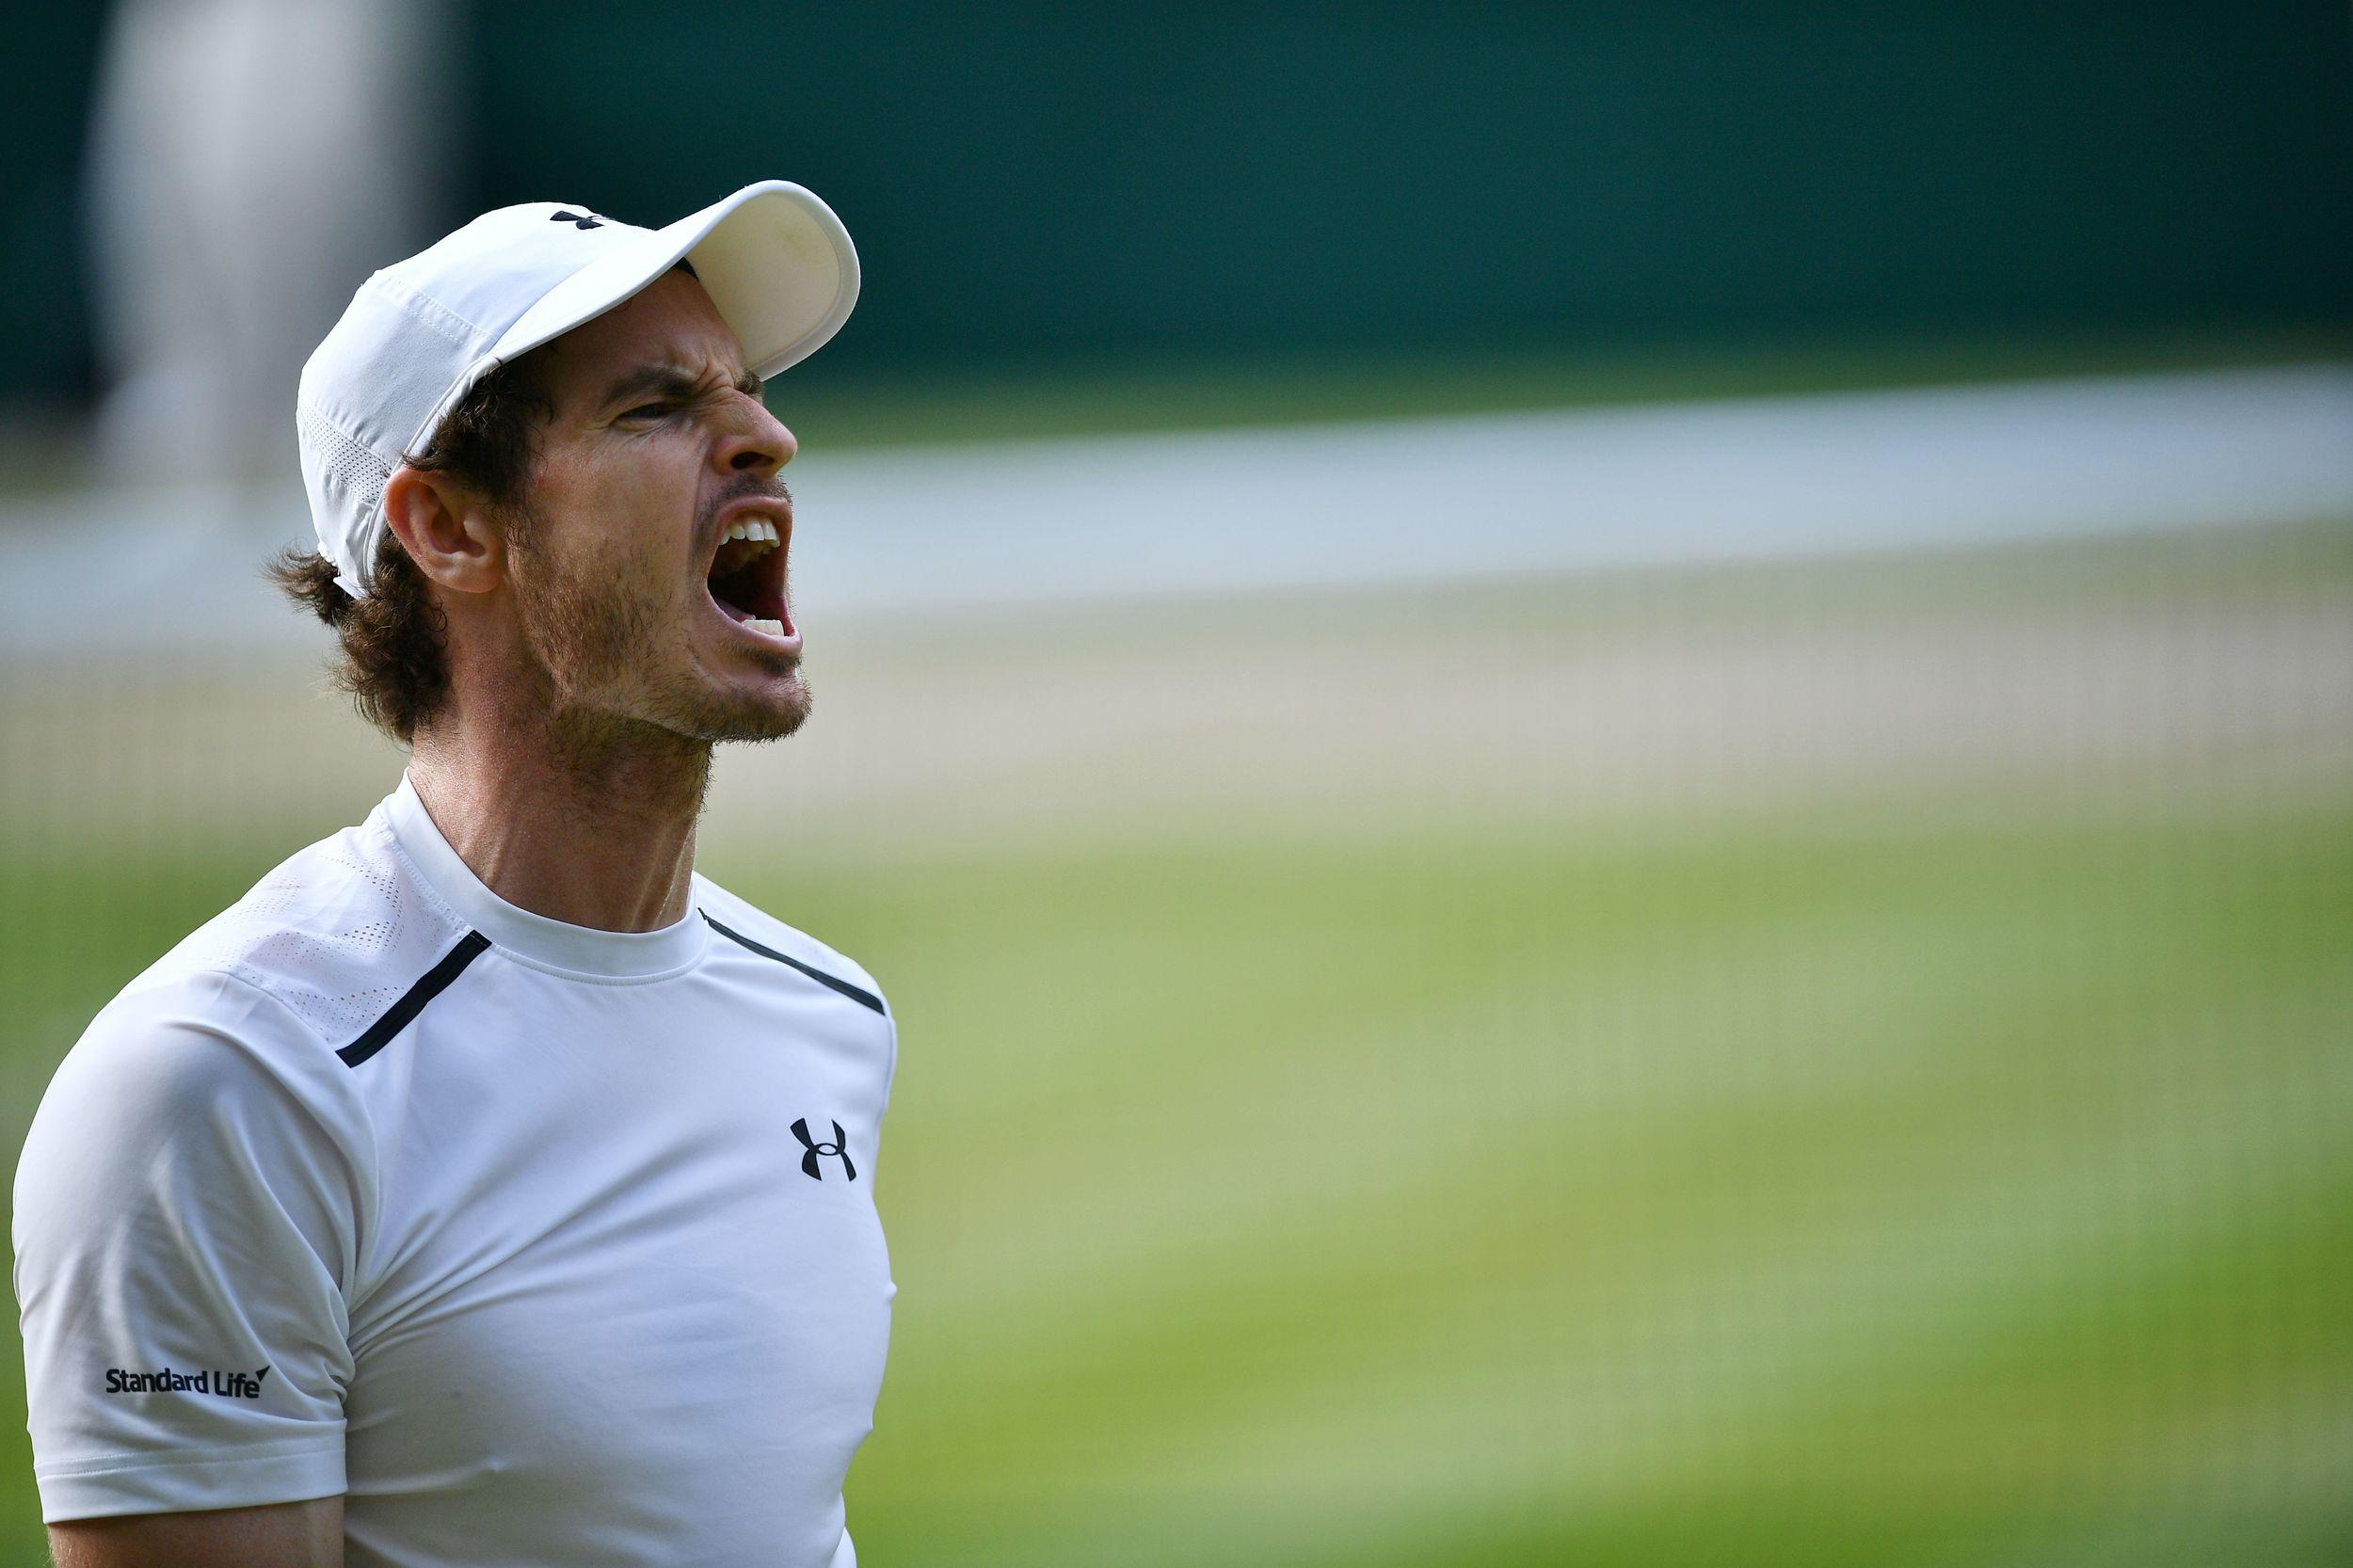 Britain's Andy Murray roars after winning a point.